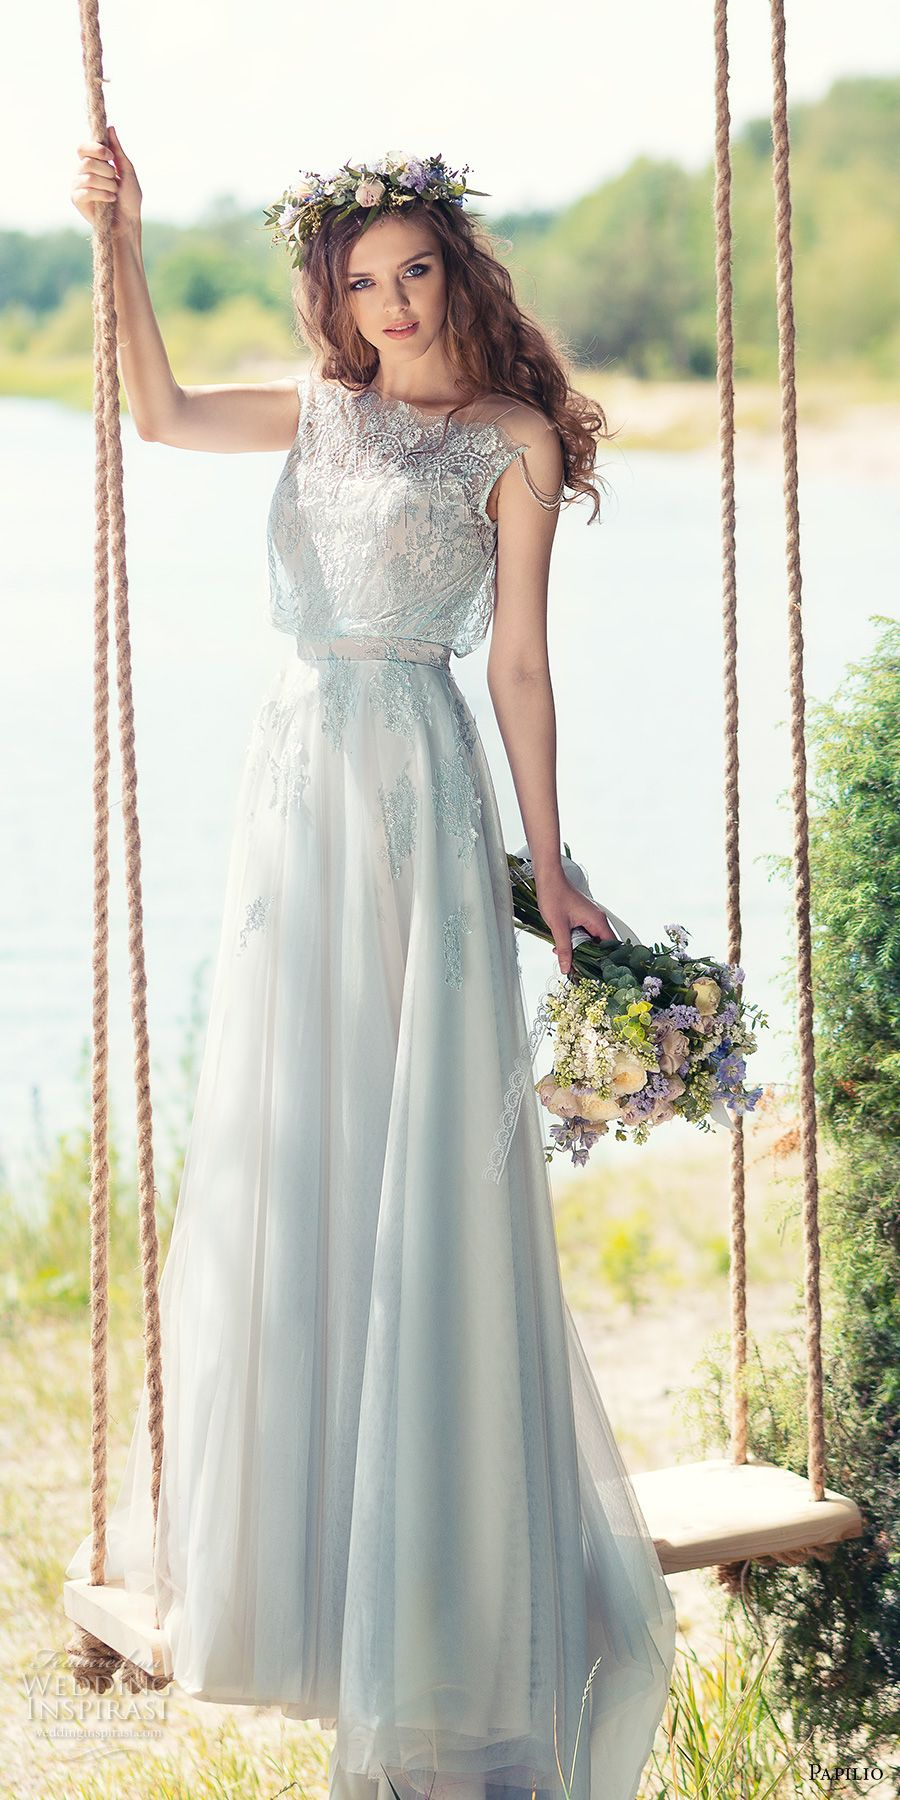 Everything you wanted to know about Papilio wedding dresses